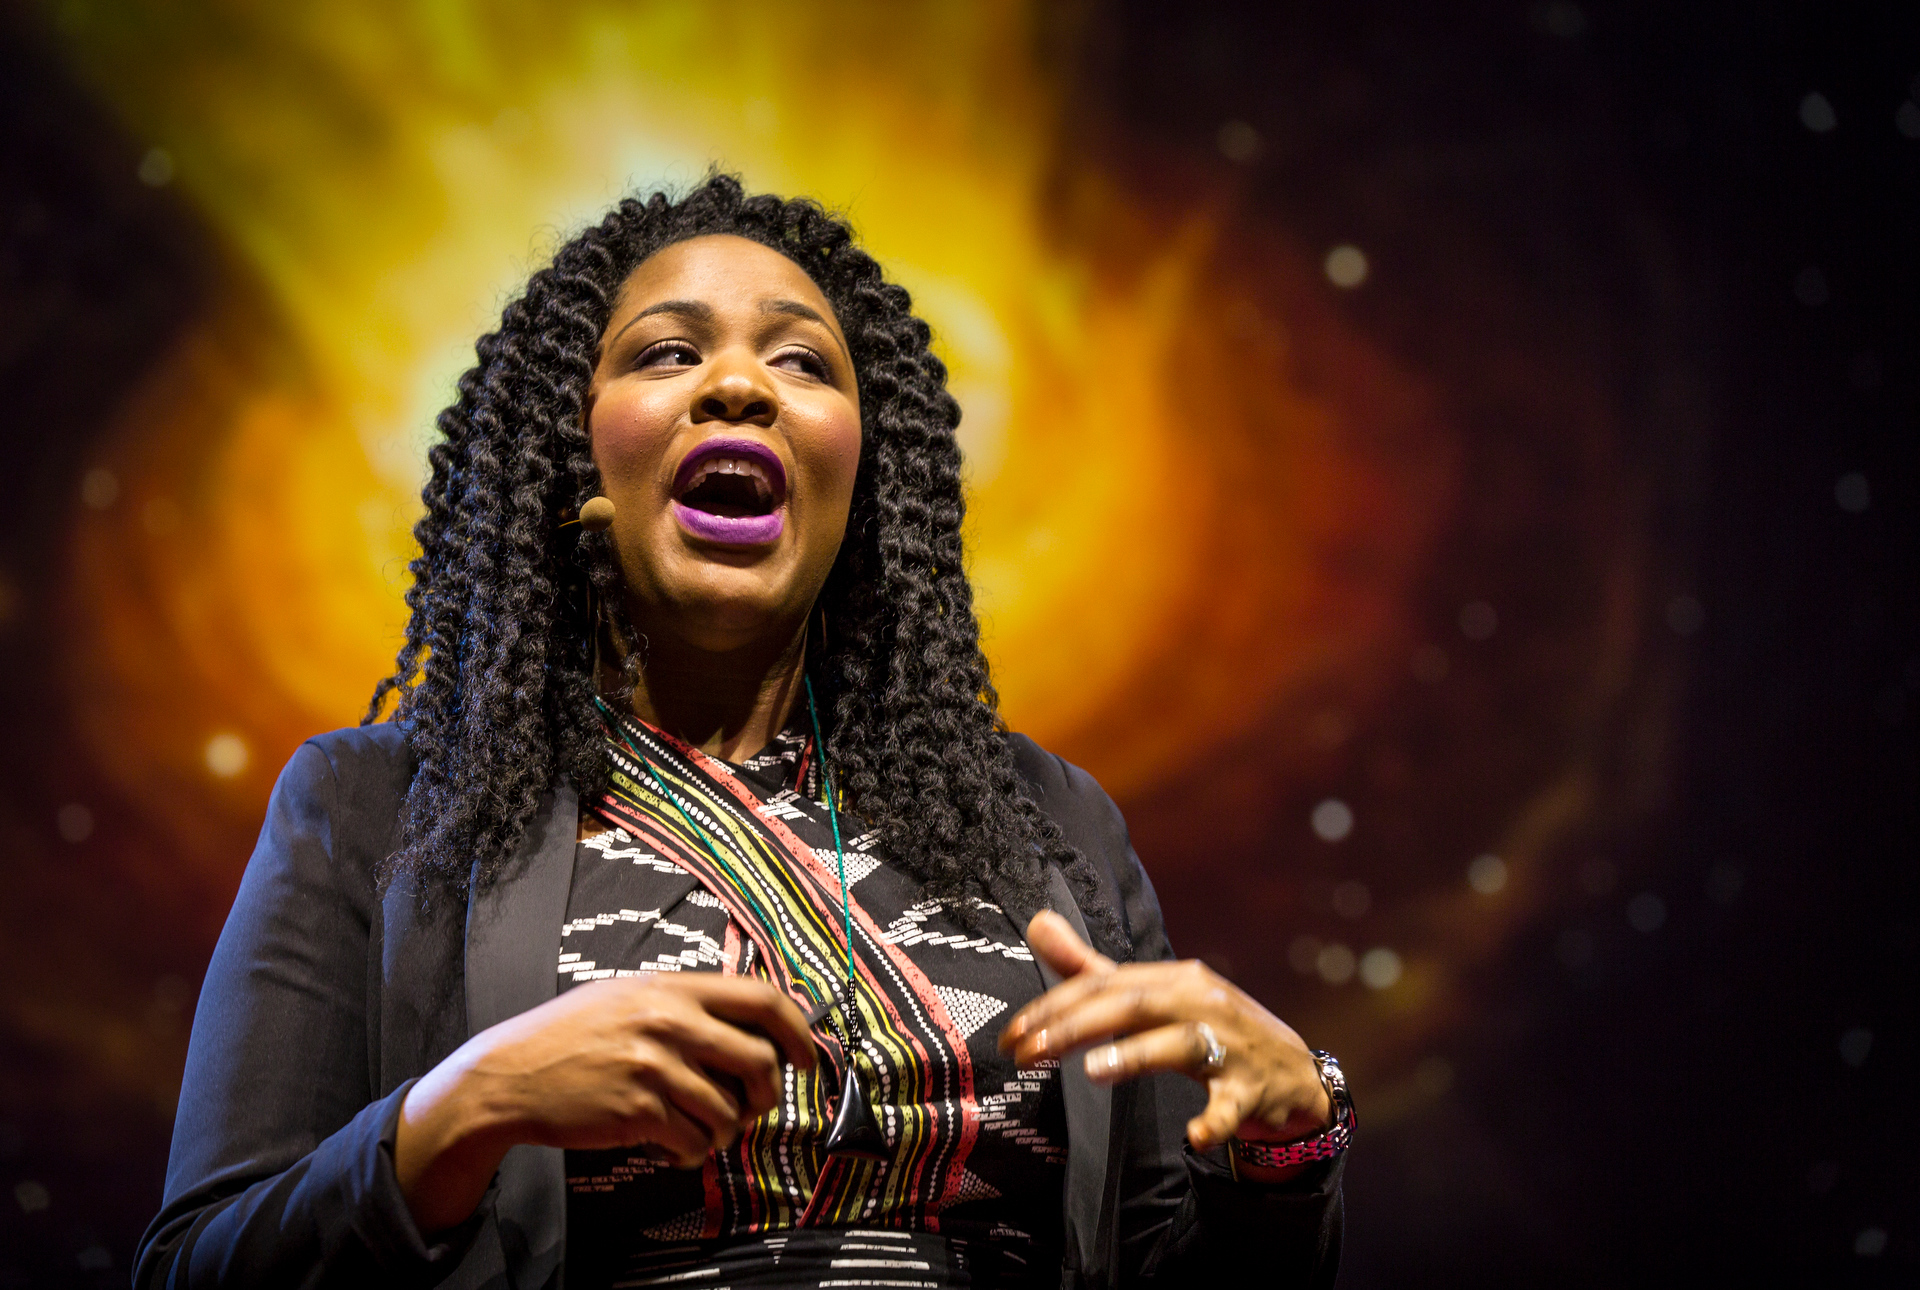 Astronomer Jedidah Isler on the wonder of blazars during Fellows session 1, TED2015 - Truth and Dare, March 16-20, 2015, Kay Meek Center, West Vancouver, Canada. Photo: Ryan Lash/TED